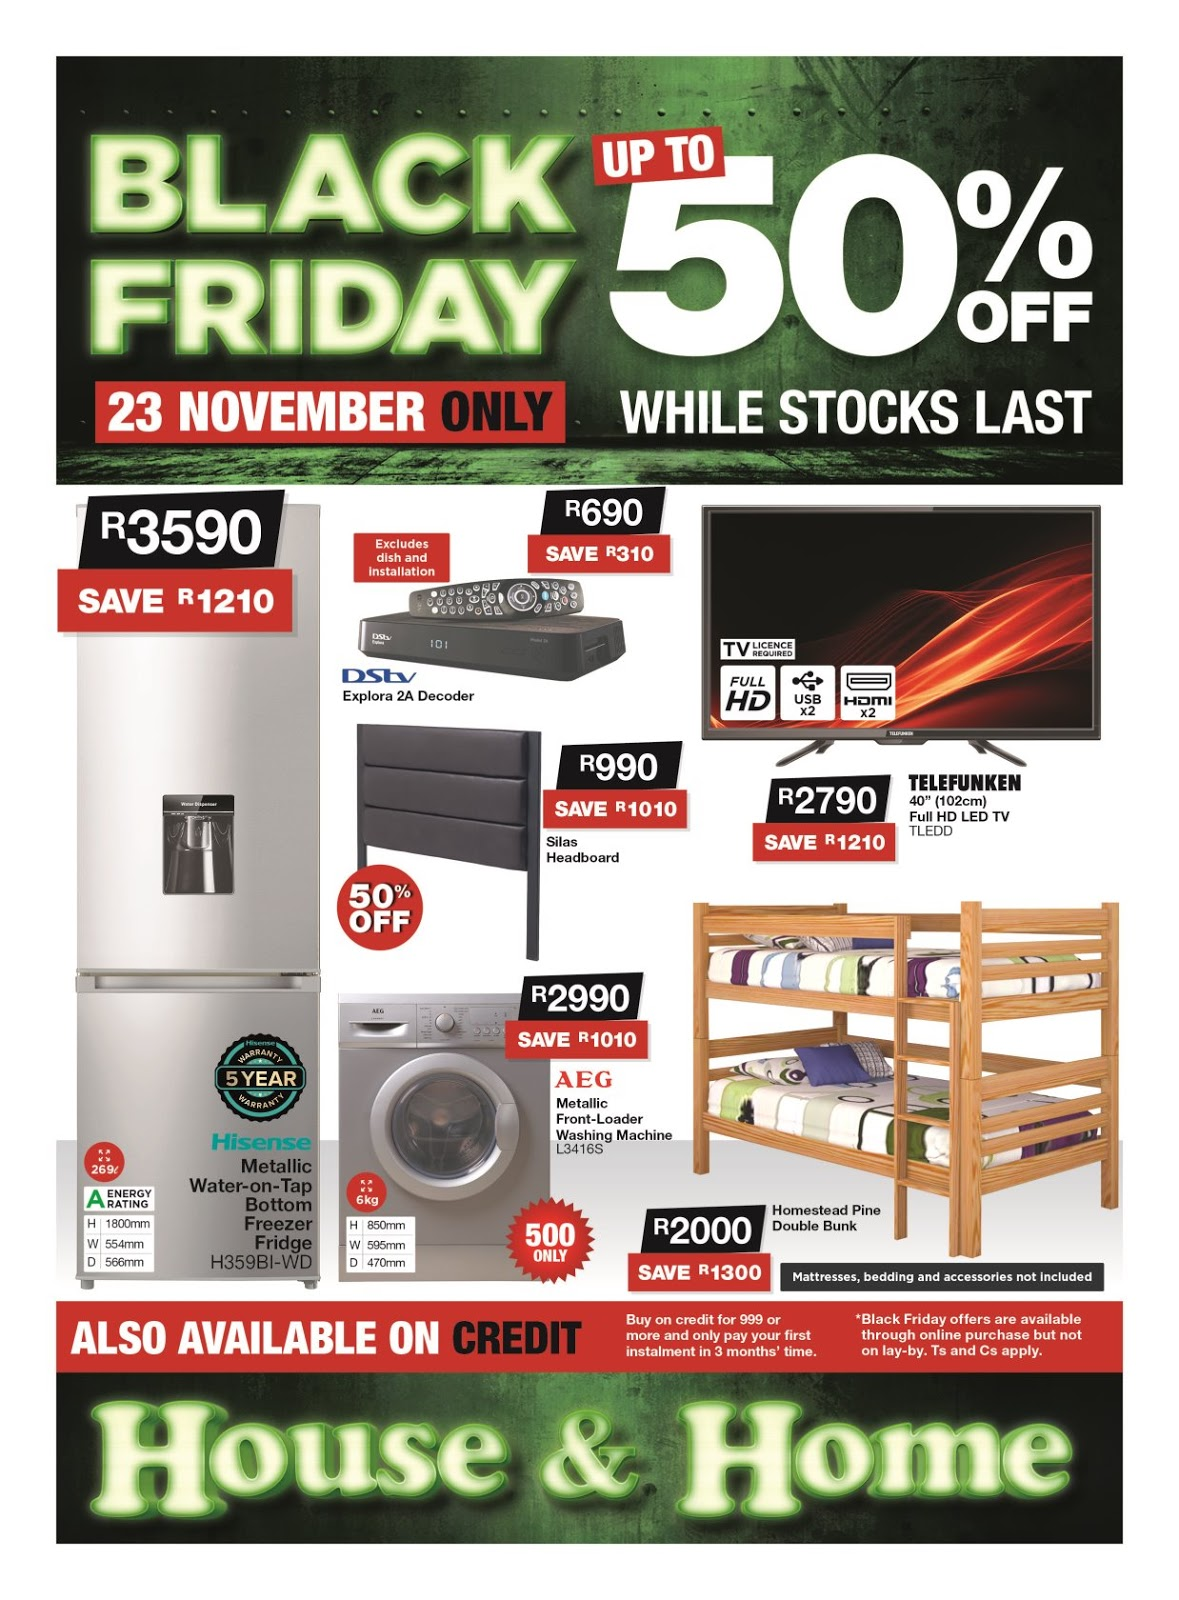 What Is Black Friday At House Home